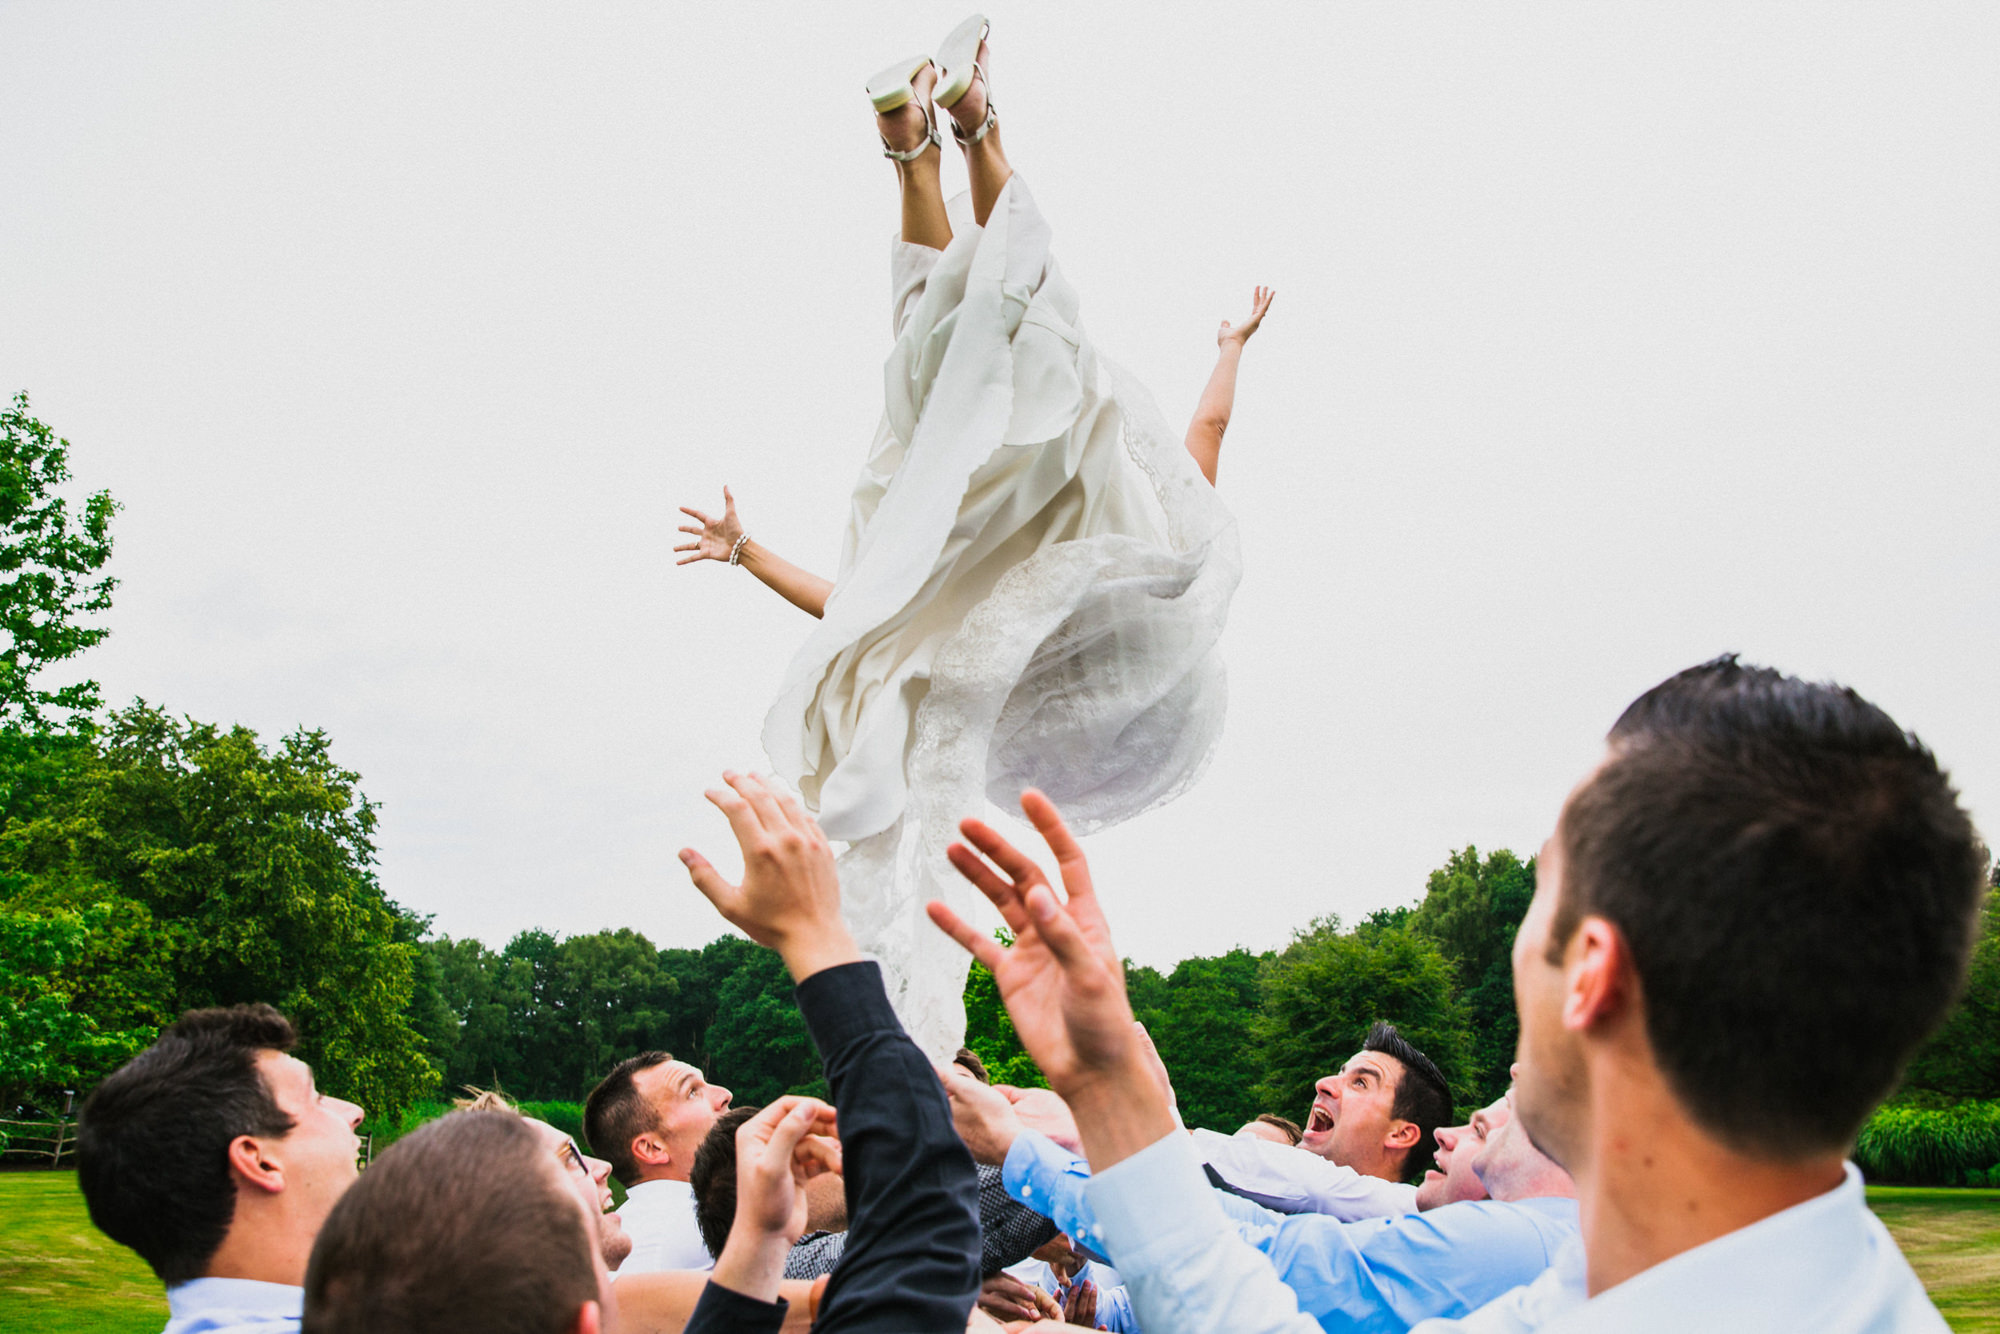 Bride gets tossed feet first in the air by groosmen - photo by Philippe Swiggers